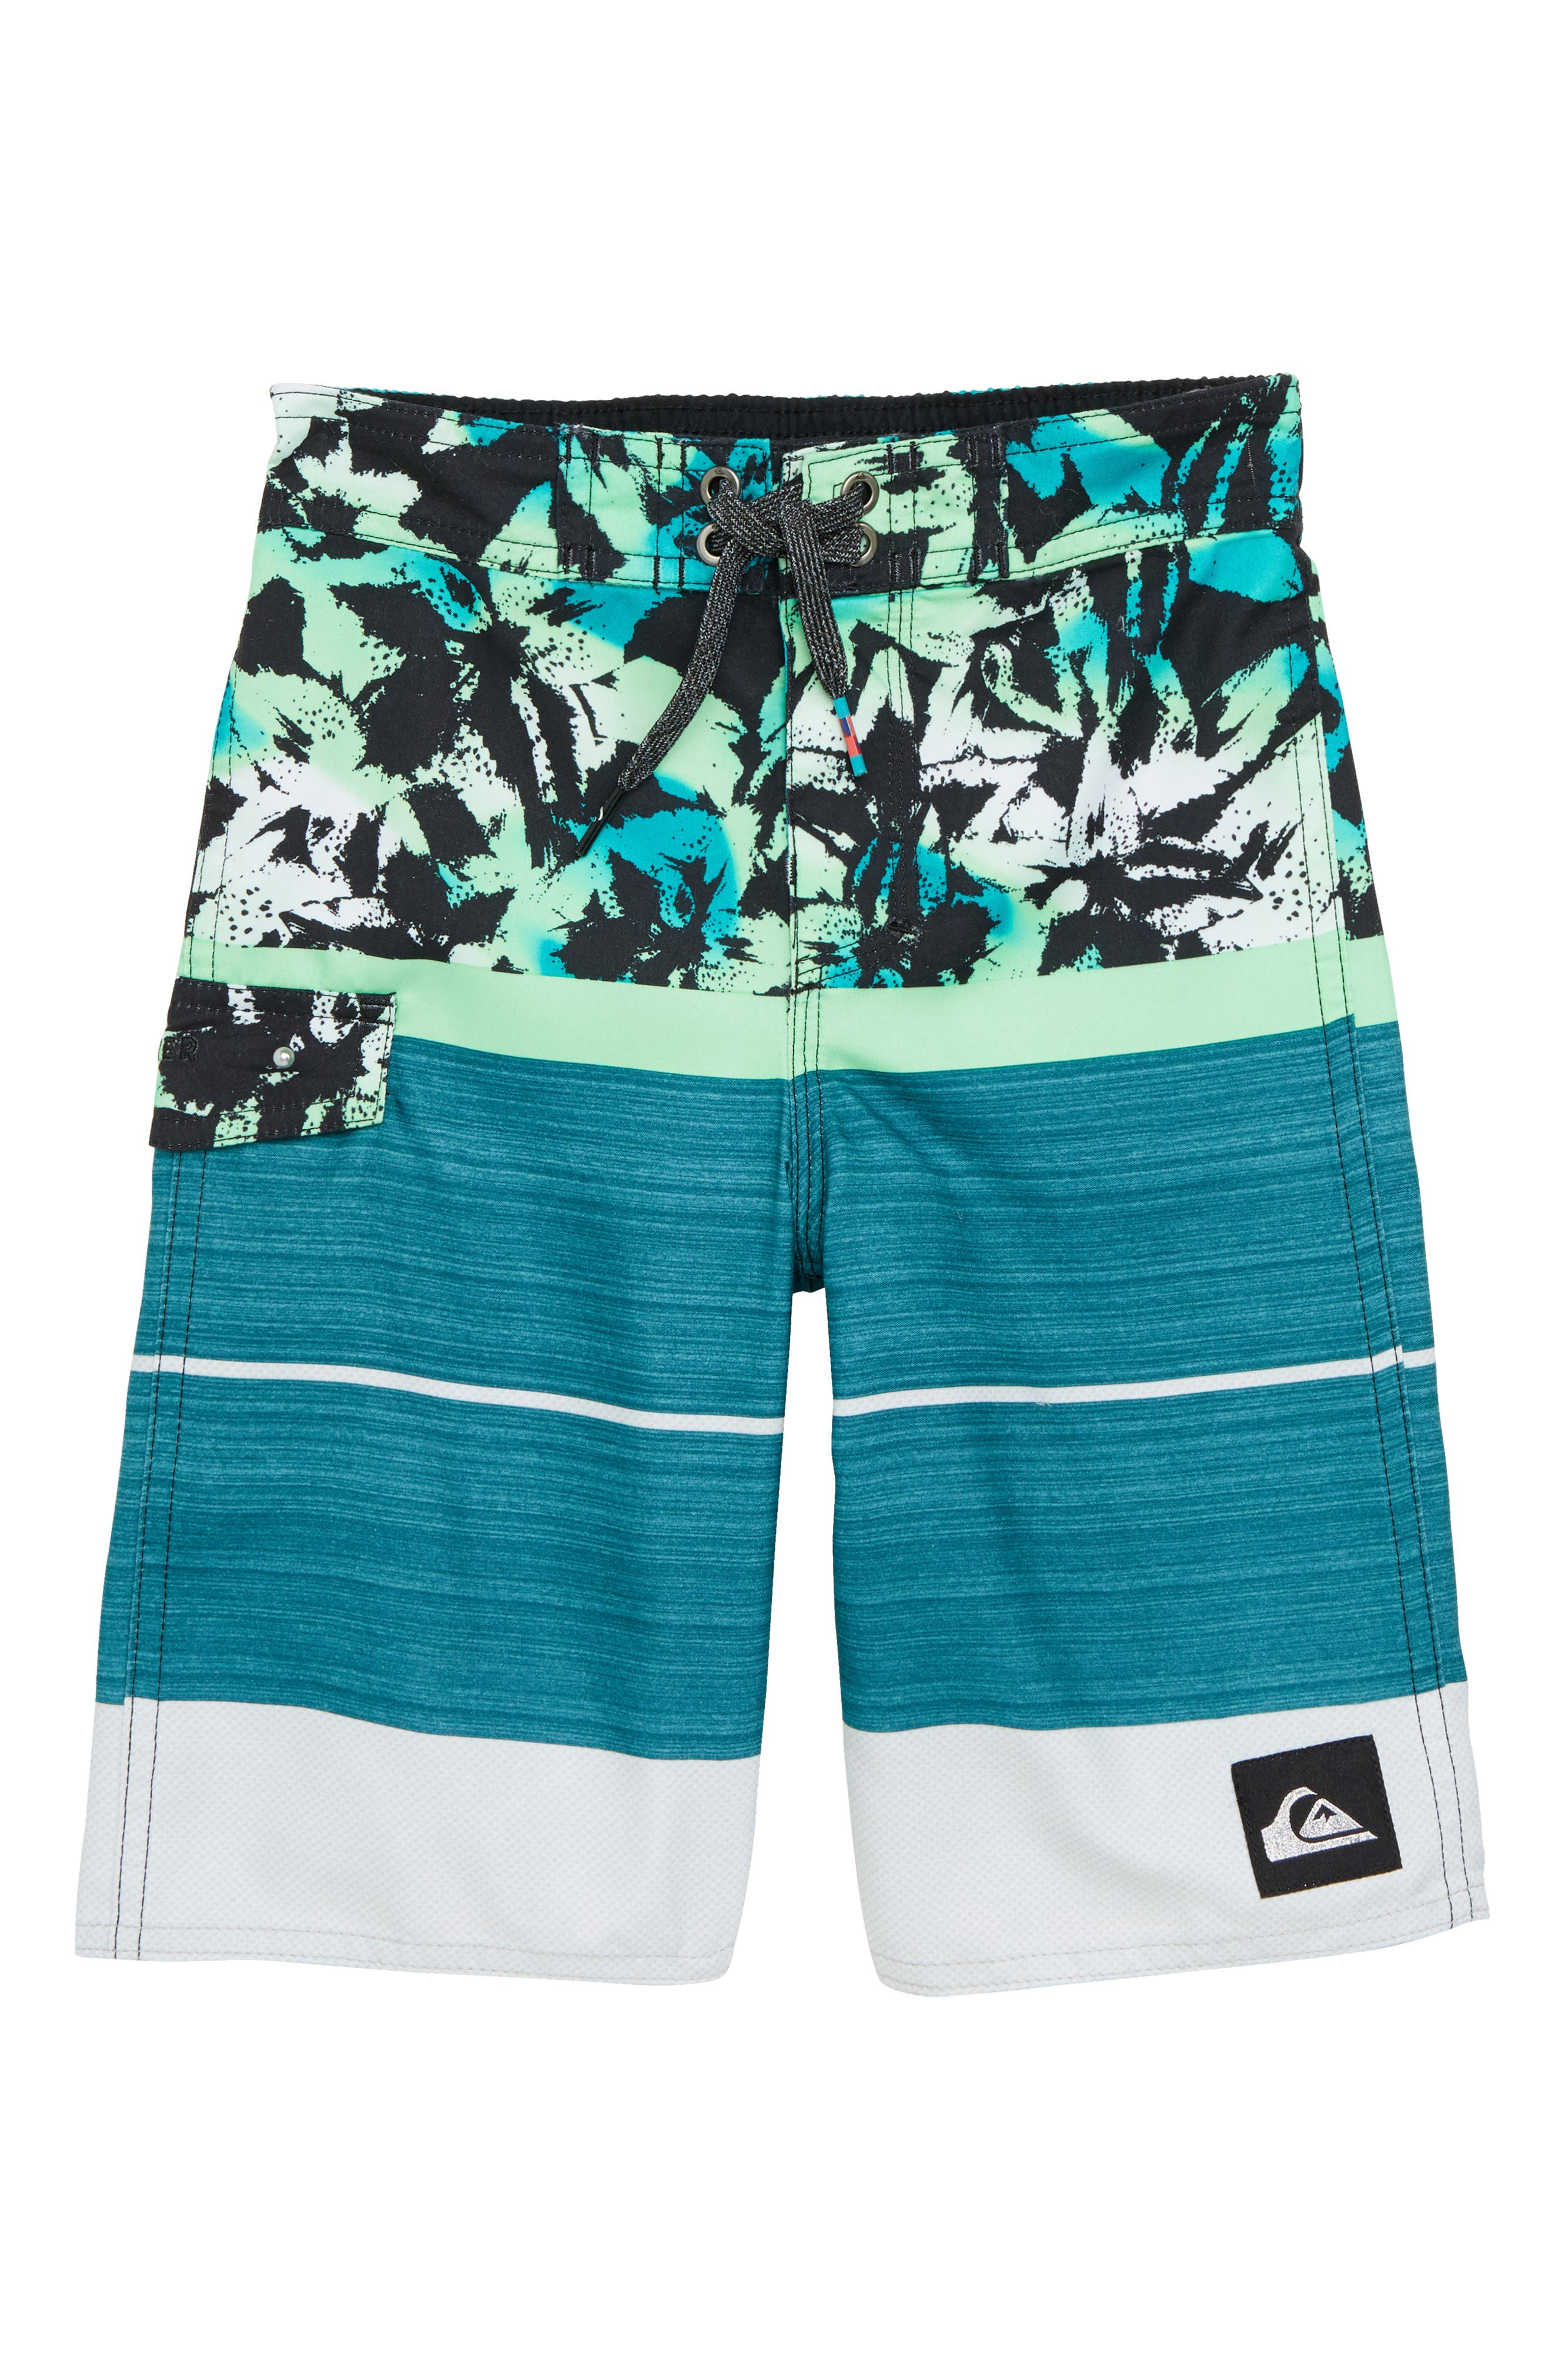 Slab Island Board Shorts,                             Main thumbnail 1, color,                             440